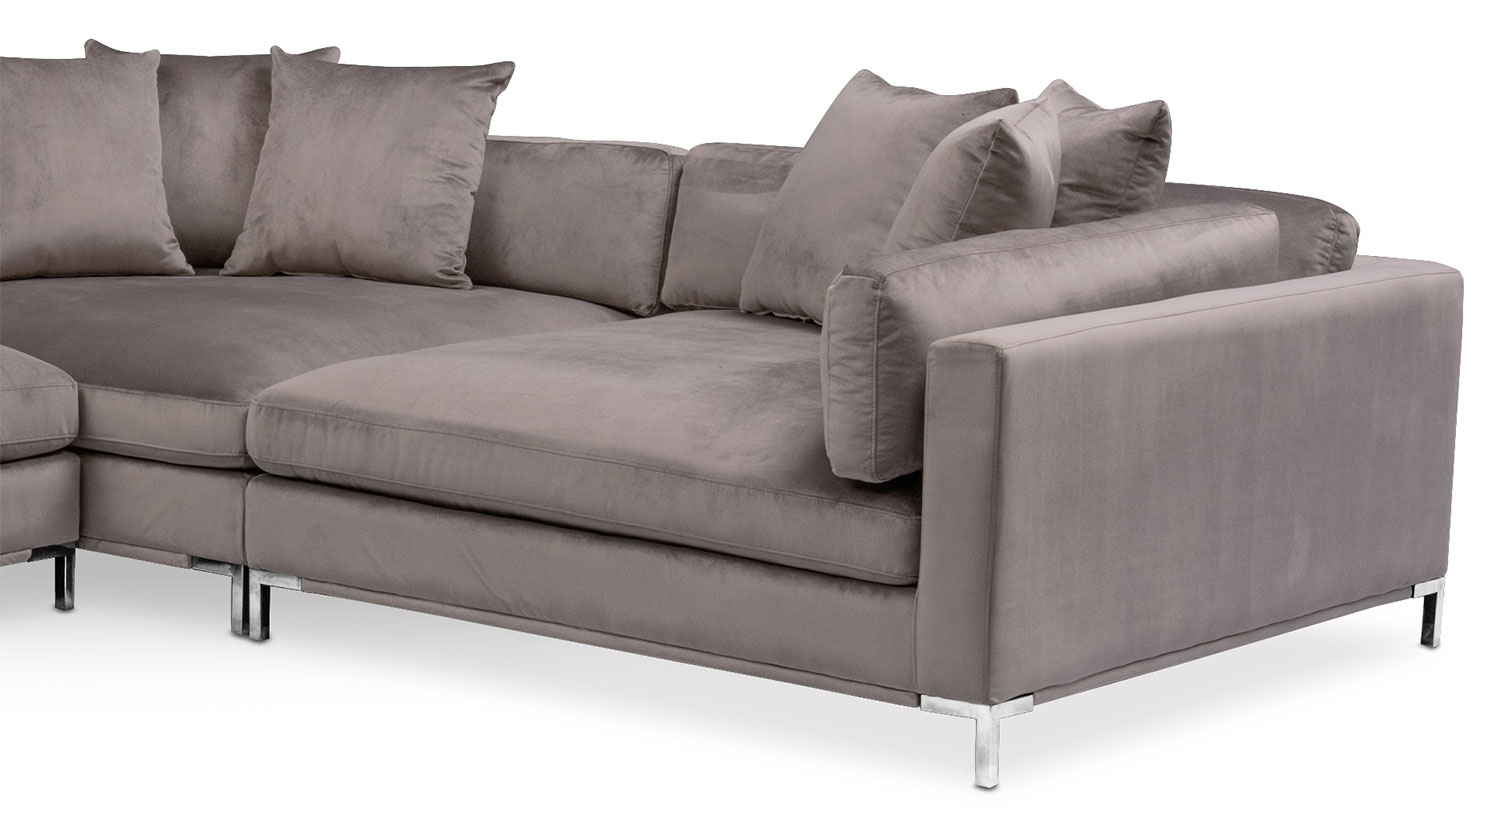 Moda 3-Piece Sectional With Left-Facing Chaise - Oyster | American for Nico Grey Sectionals With Left Facing Storage Chaise